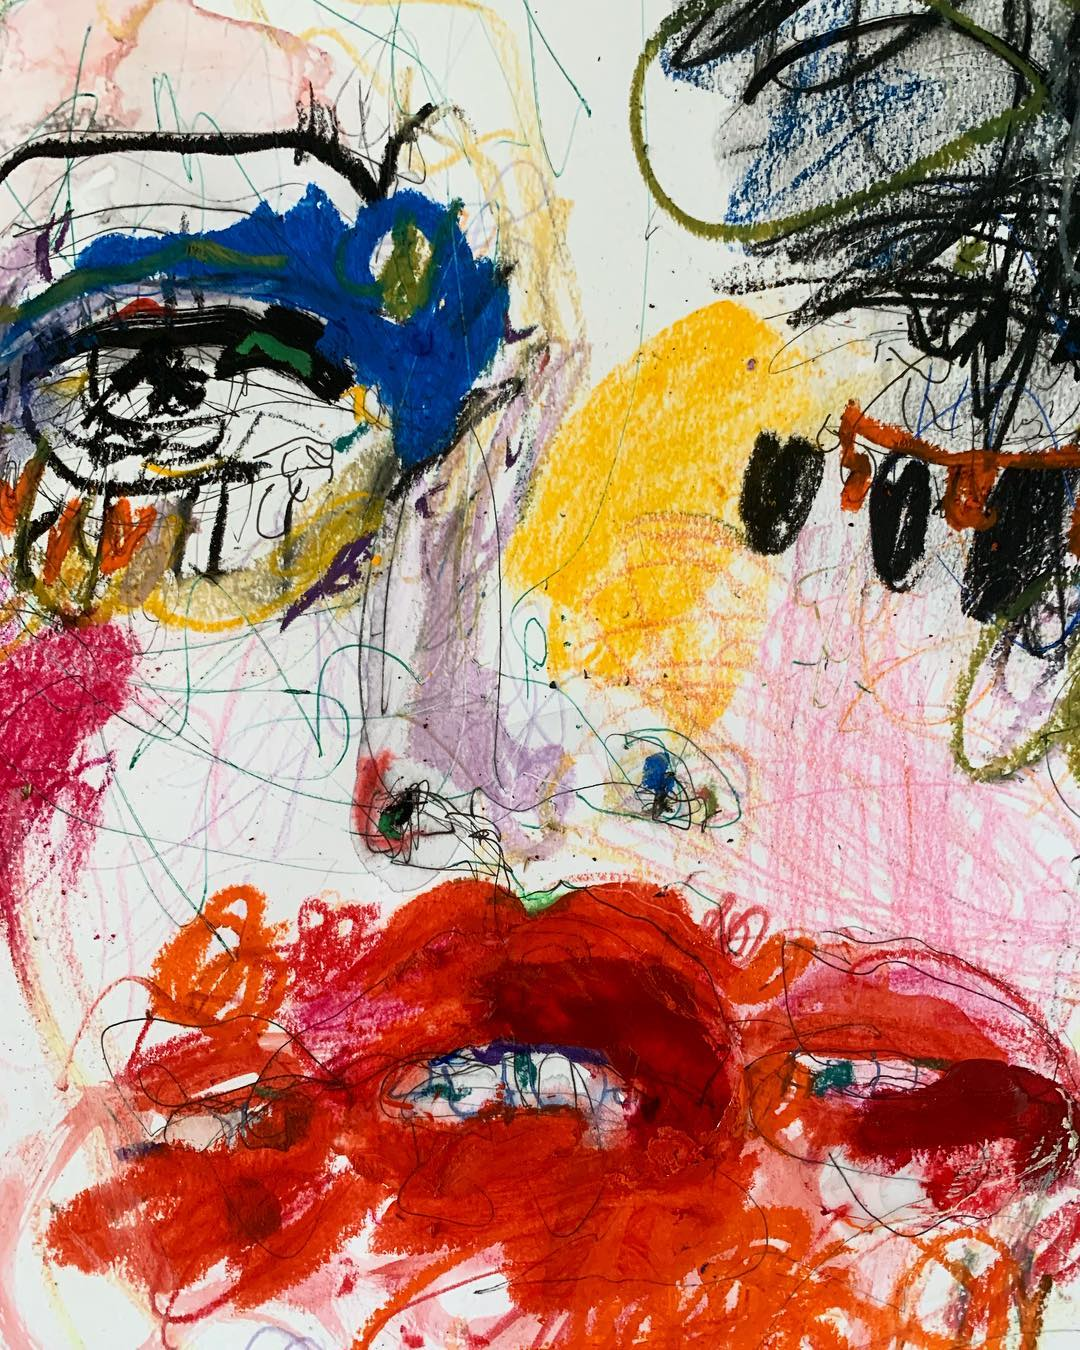 Facelift by © Rebecca Russo AKA  @cigarettesandkale , courtesy of the artist